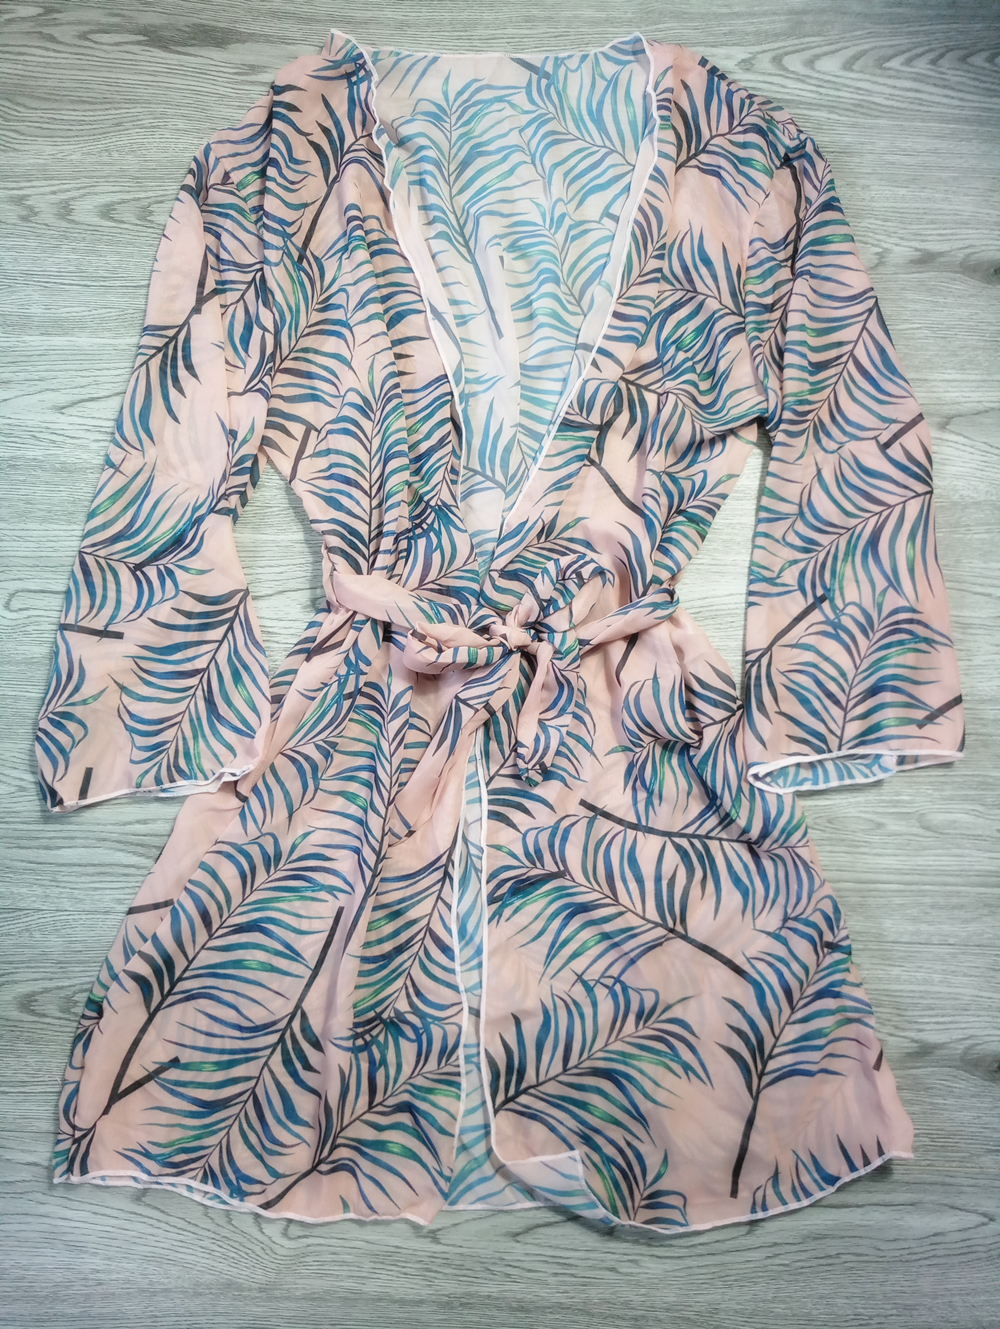 2019 Pareo Beach Cover Up Leaf Printing Bikini Cover Up Swimwear Women Robe De Plage Beach Cardigan Bathing Suit Cover Ups